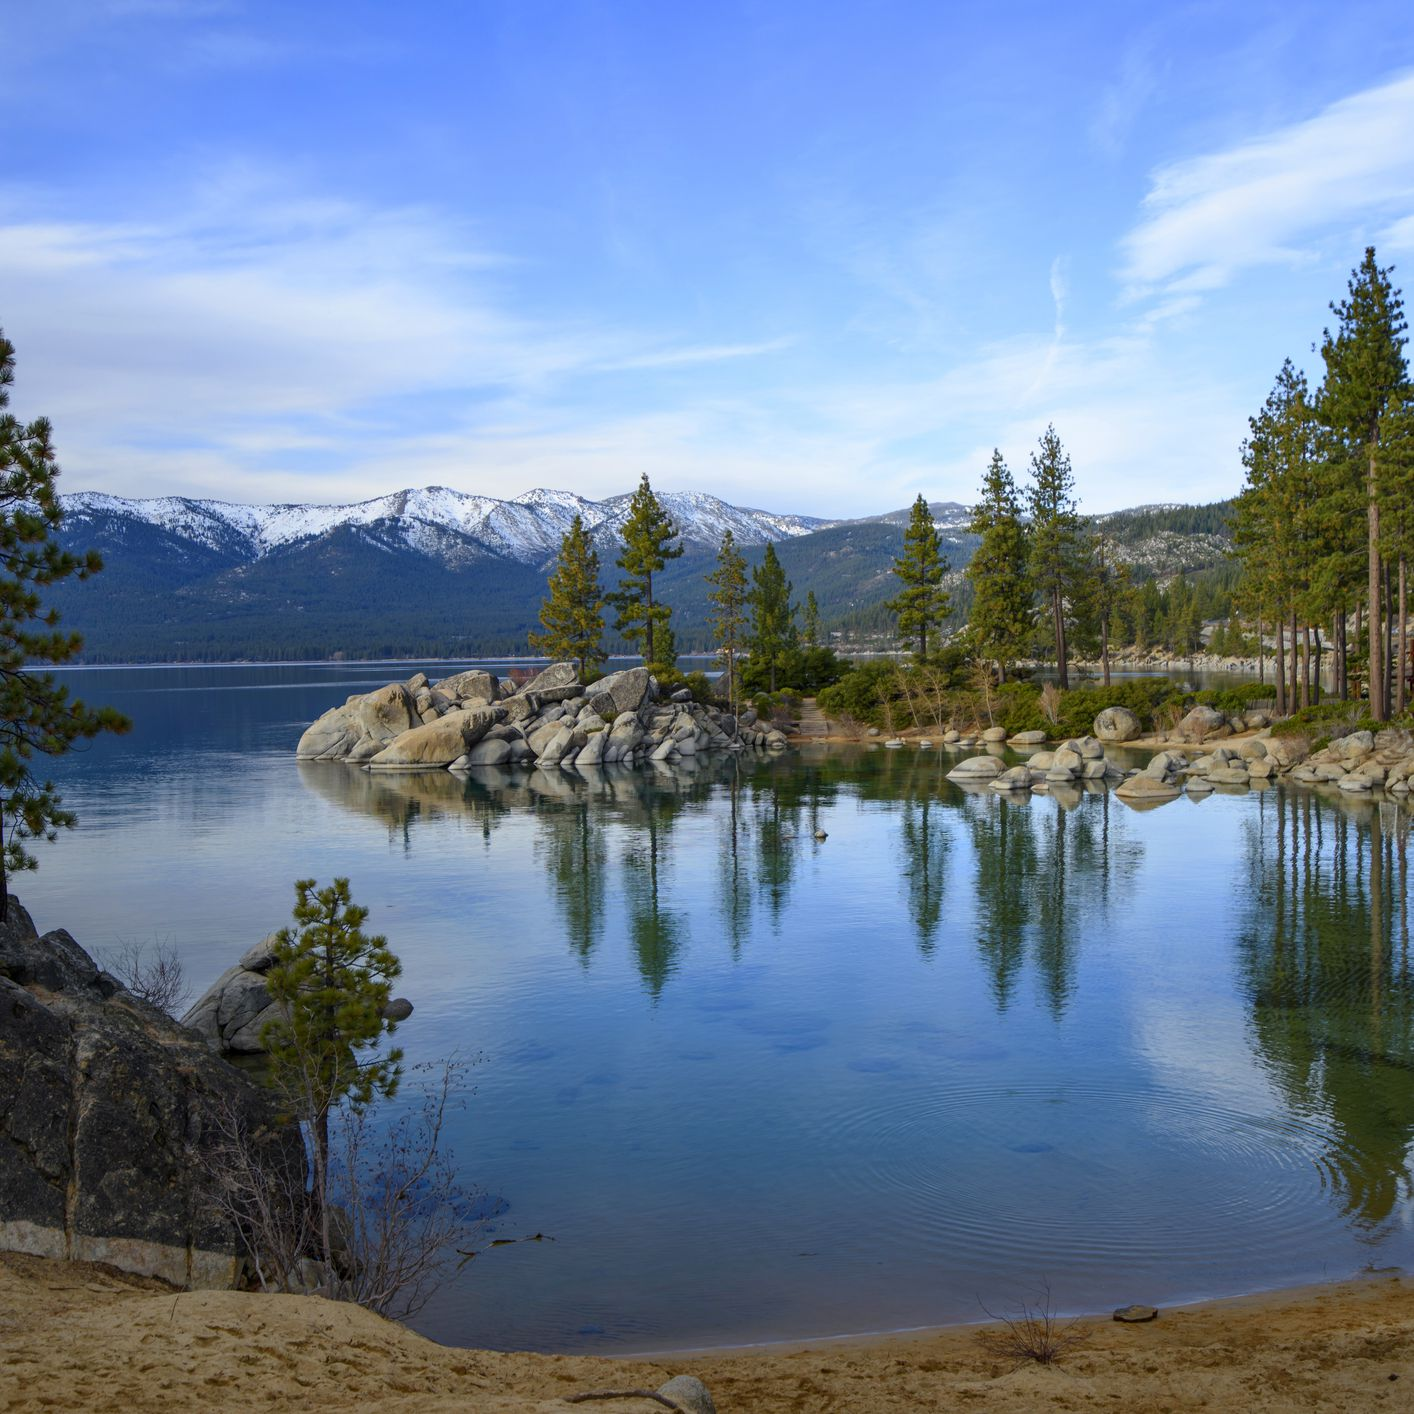 The Best Time to Visit Lake Tahoe